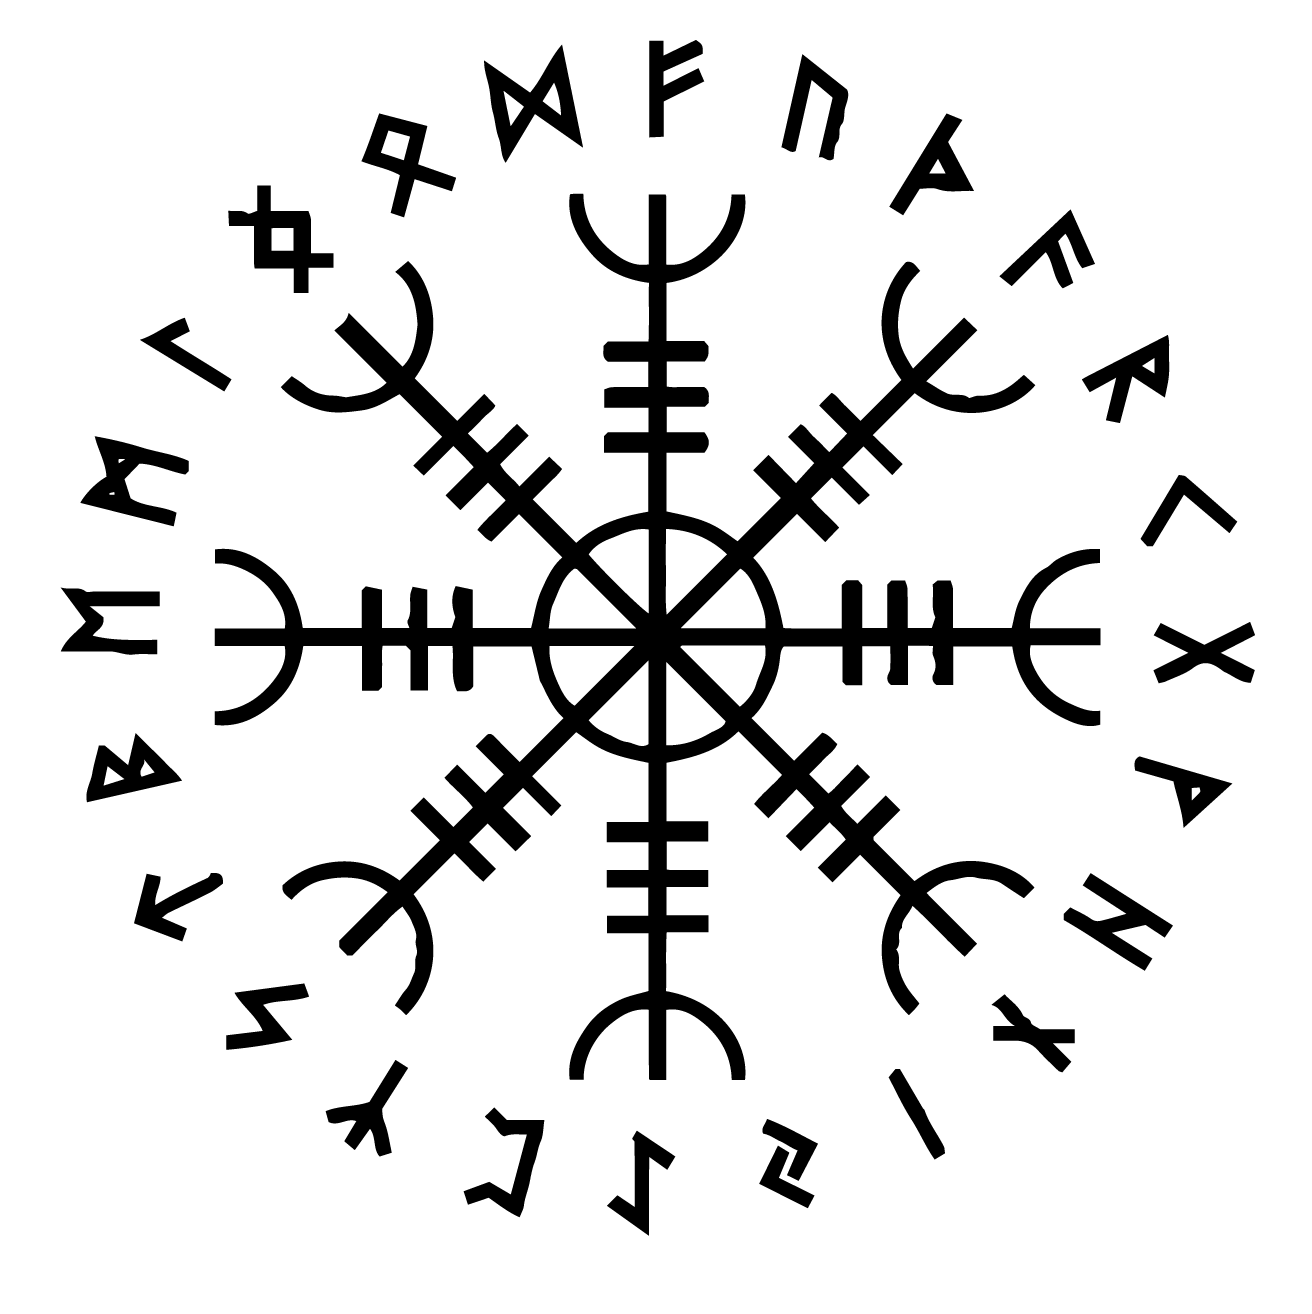 Aegishjalmraegishjalmur the helm of awe symbol and its meaning when fafnir spoke in the volsungsaga none dared come near me this was perhaps the truth of the aegishjalmurs power to which he alluded biocorpaavc